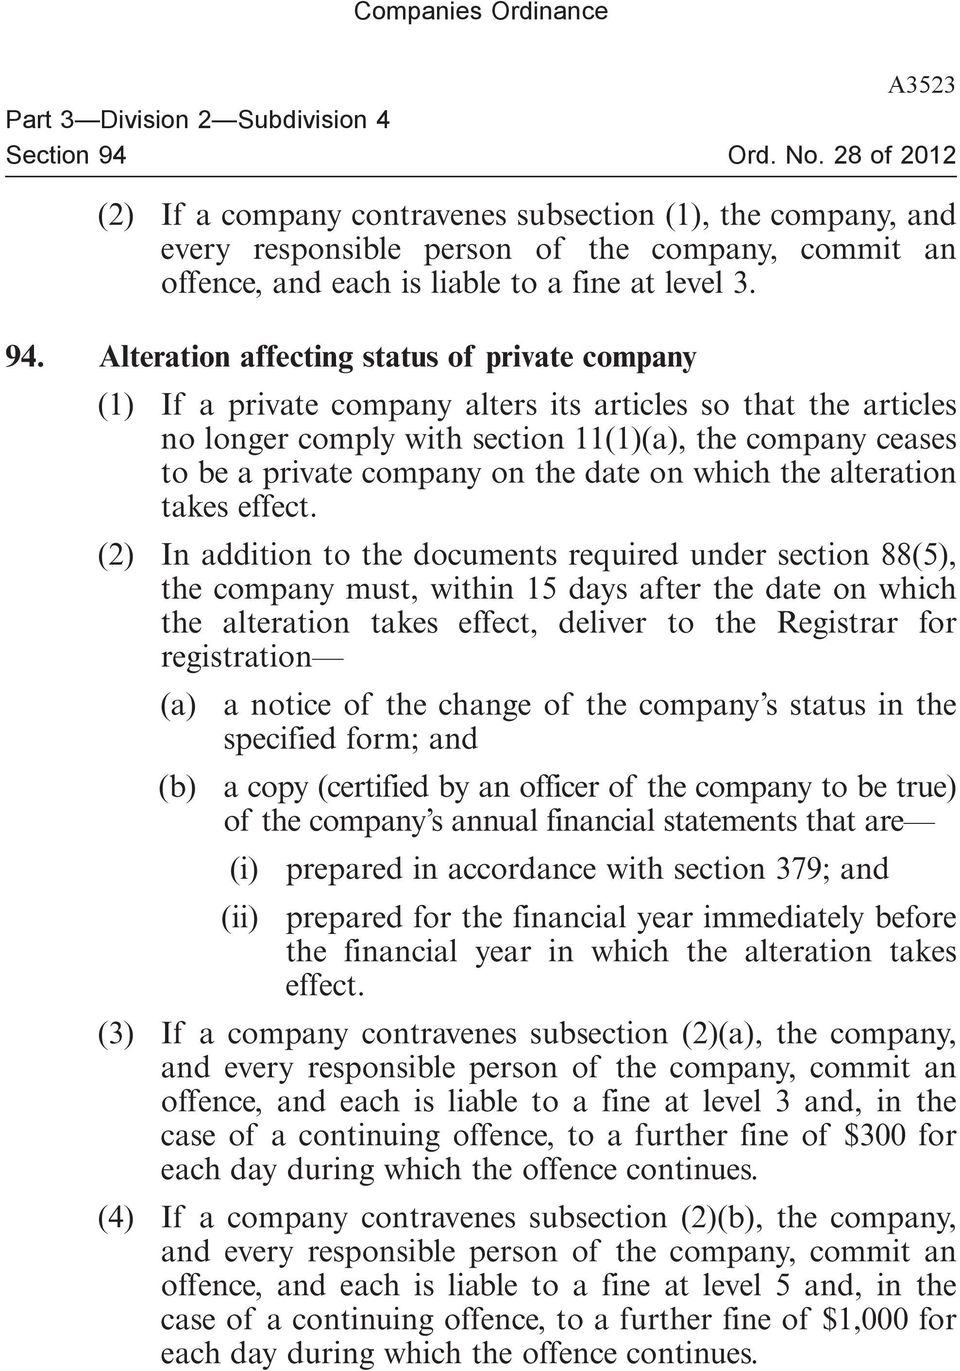 Alteration affecting status of private company (1) If a private company alters its articles so that the articles no longer comply with section 11(1)(a), the company ceases to be a private company on